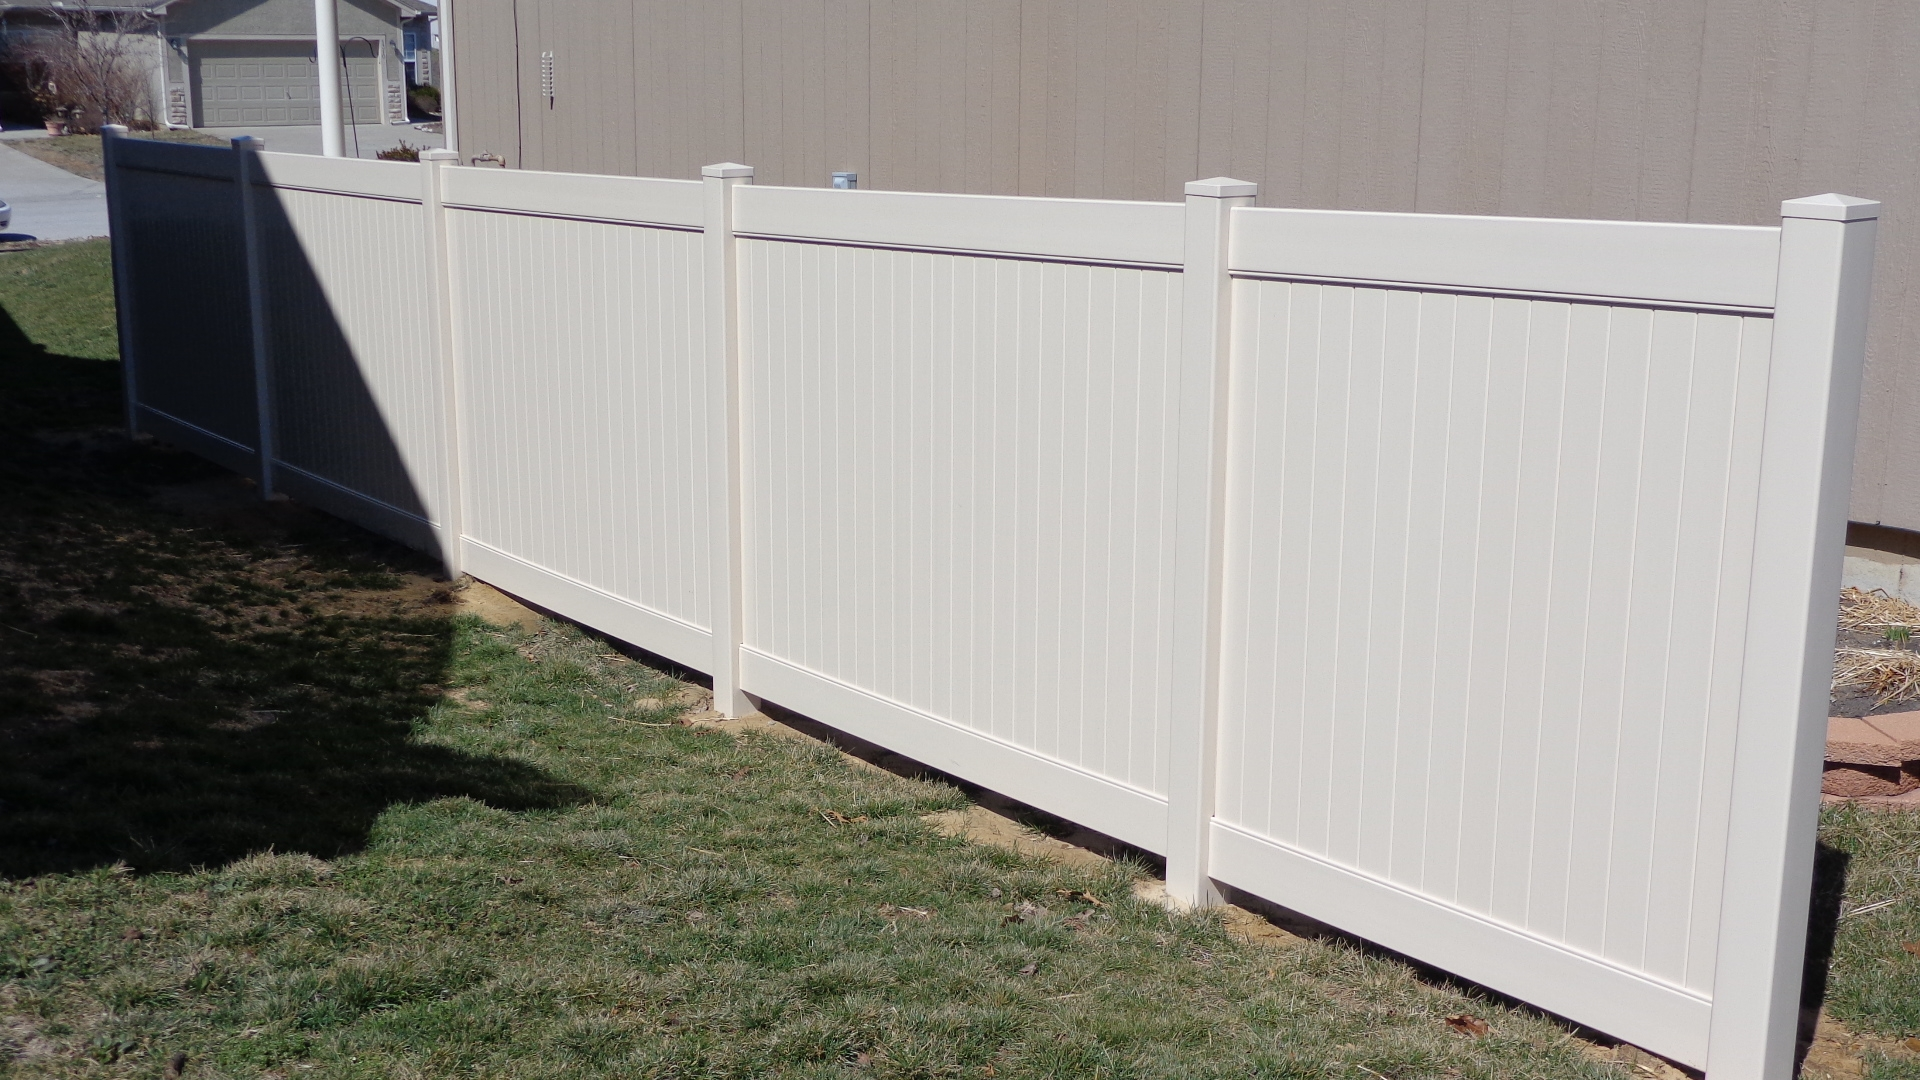 6 Vinyl Privacy Fence America S Fence Store